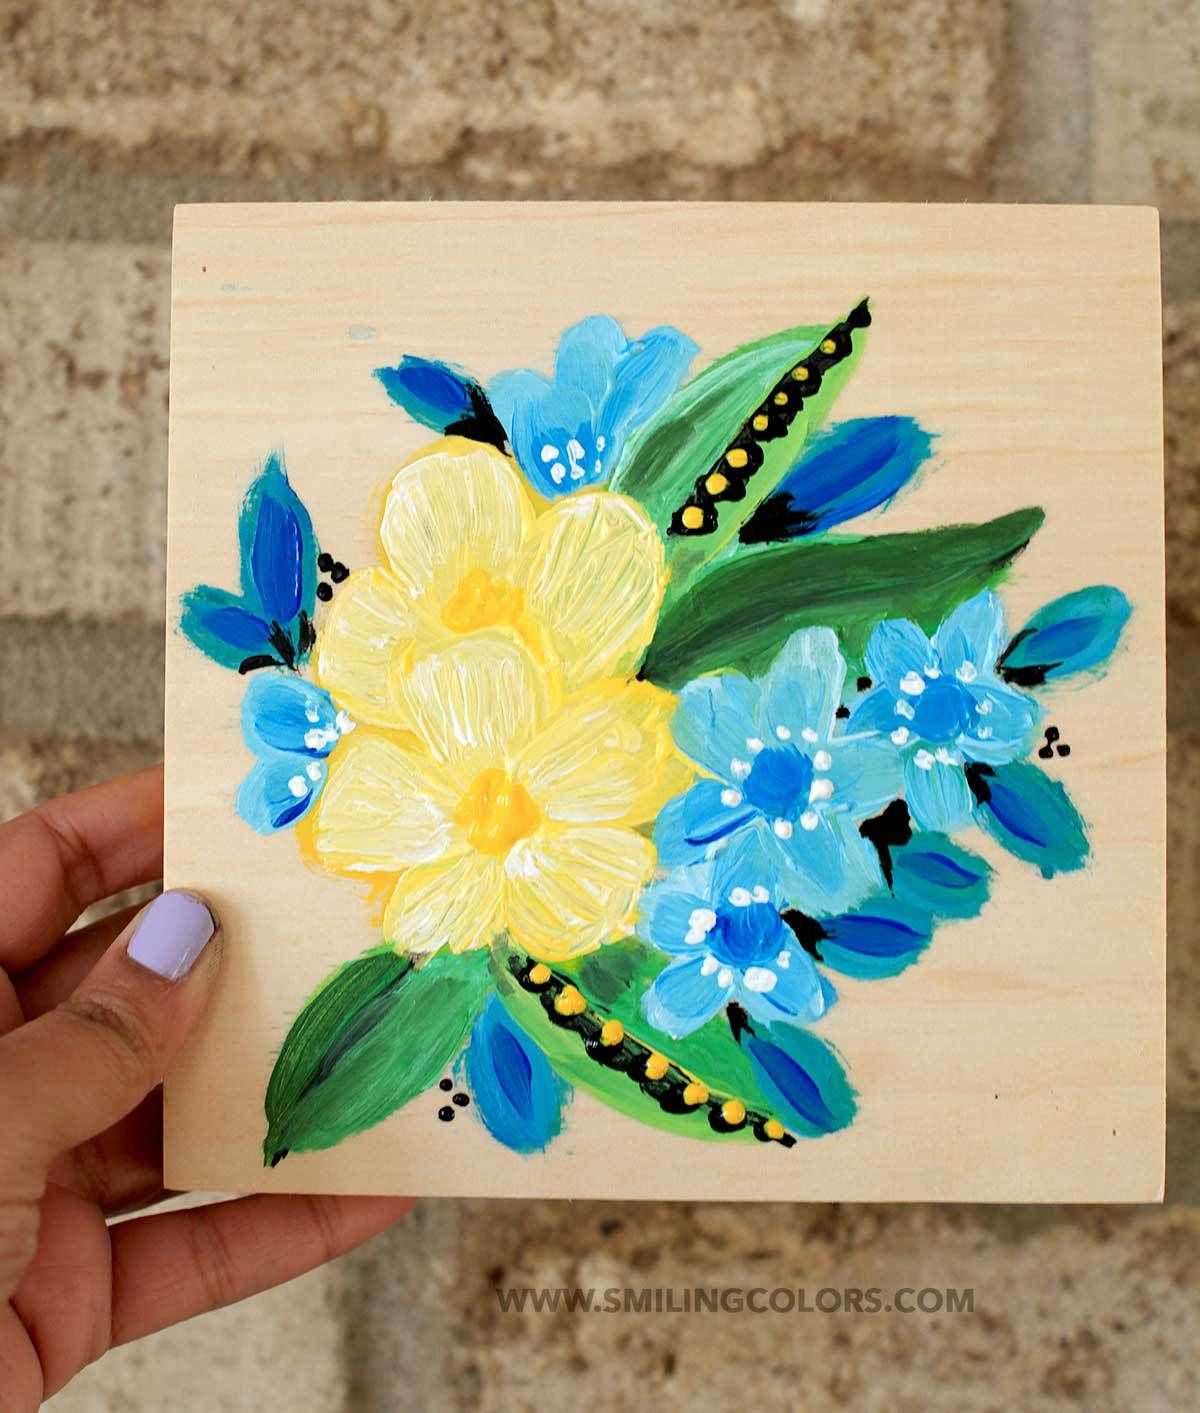 Painting Acrylic Flowers On A Wood Canvas Acrylic Painting